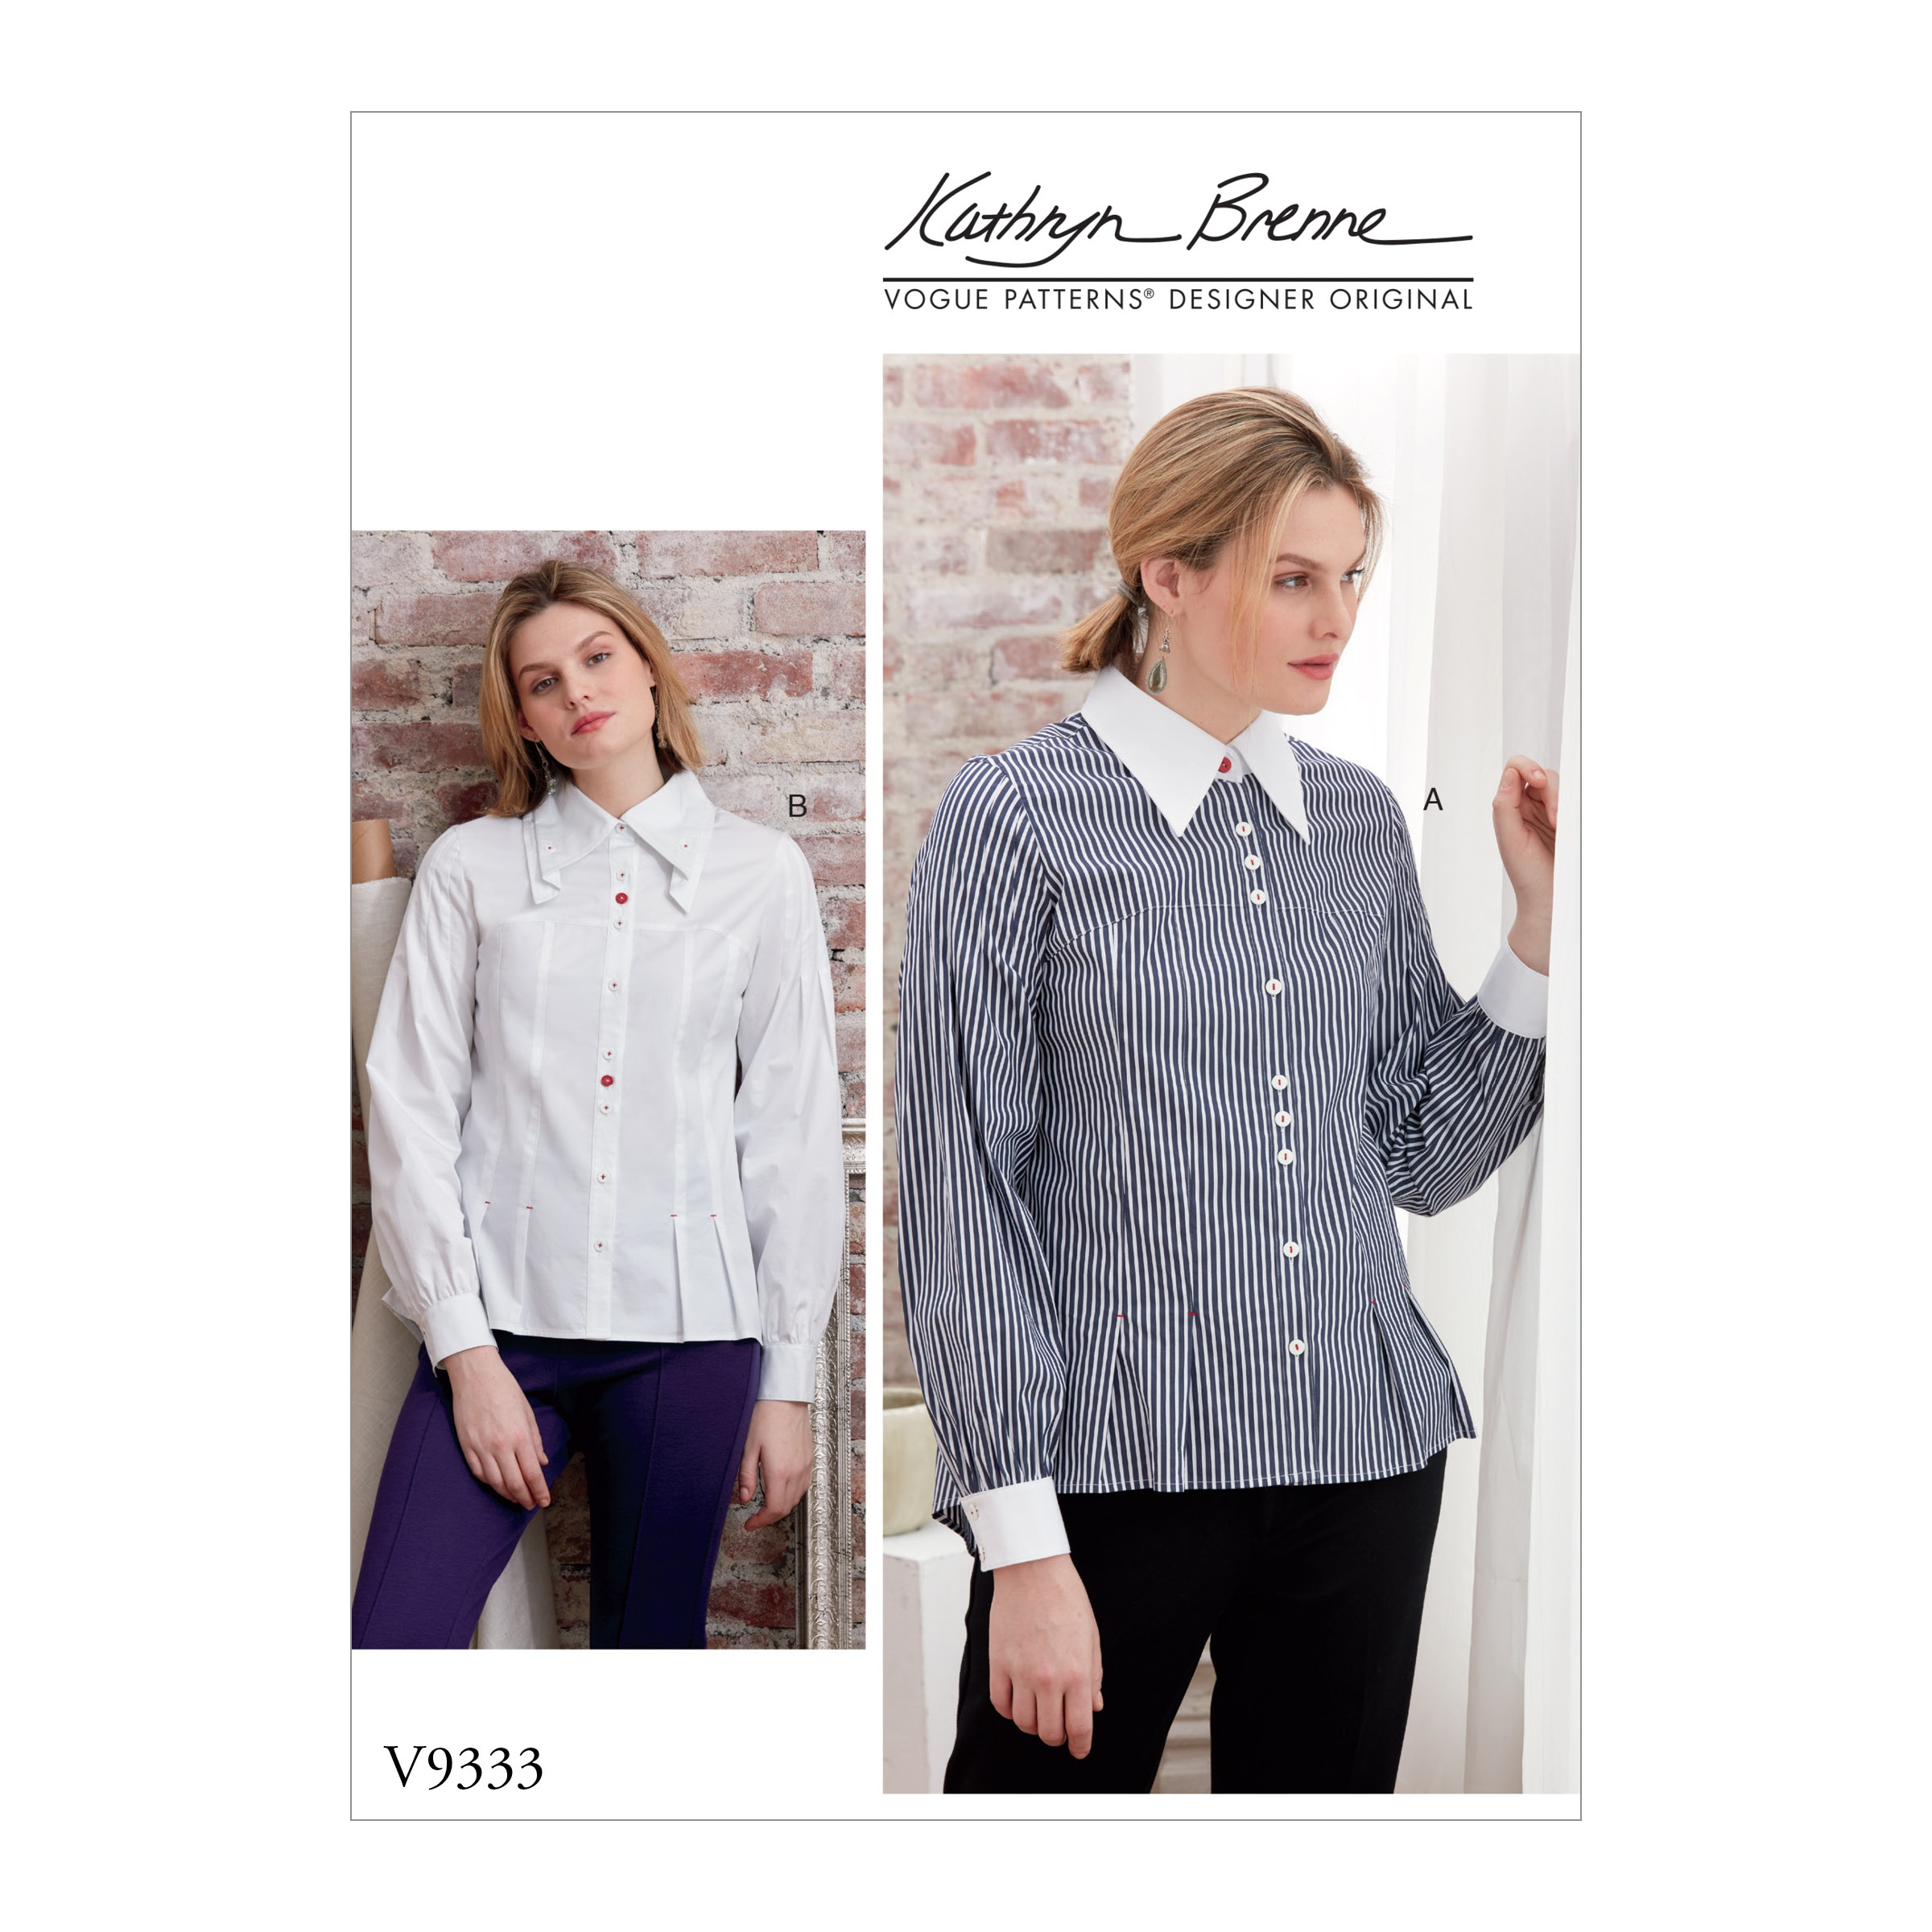 Vogue Patterns Sewing Pattern Misses' Shirt-14-16-18-20-22